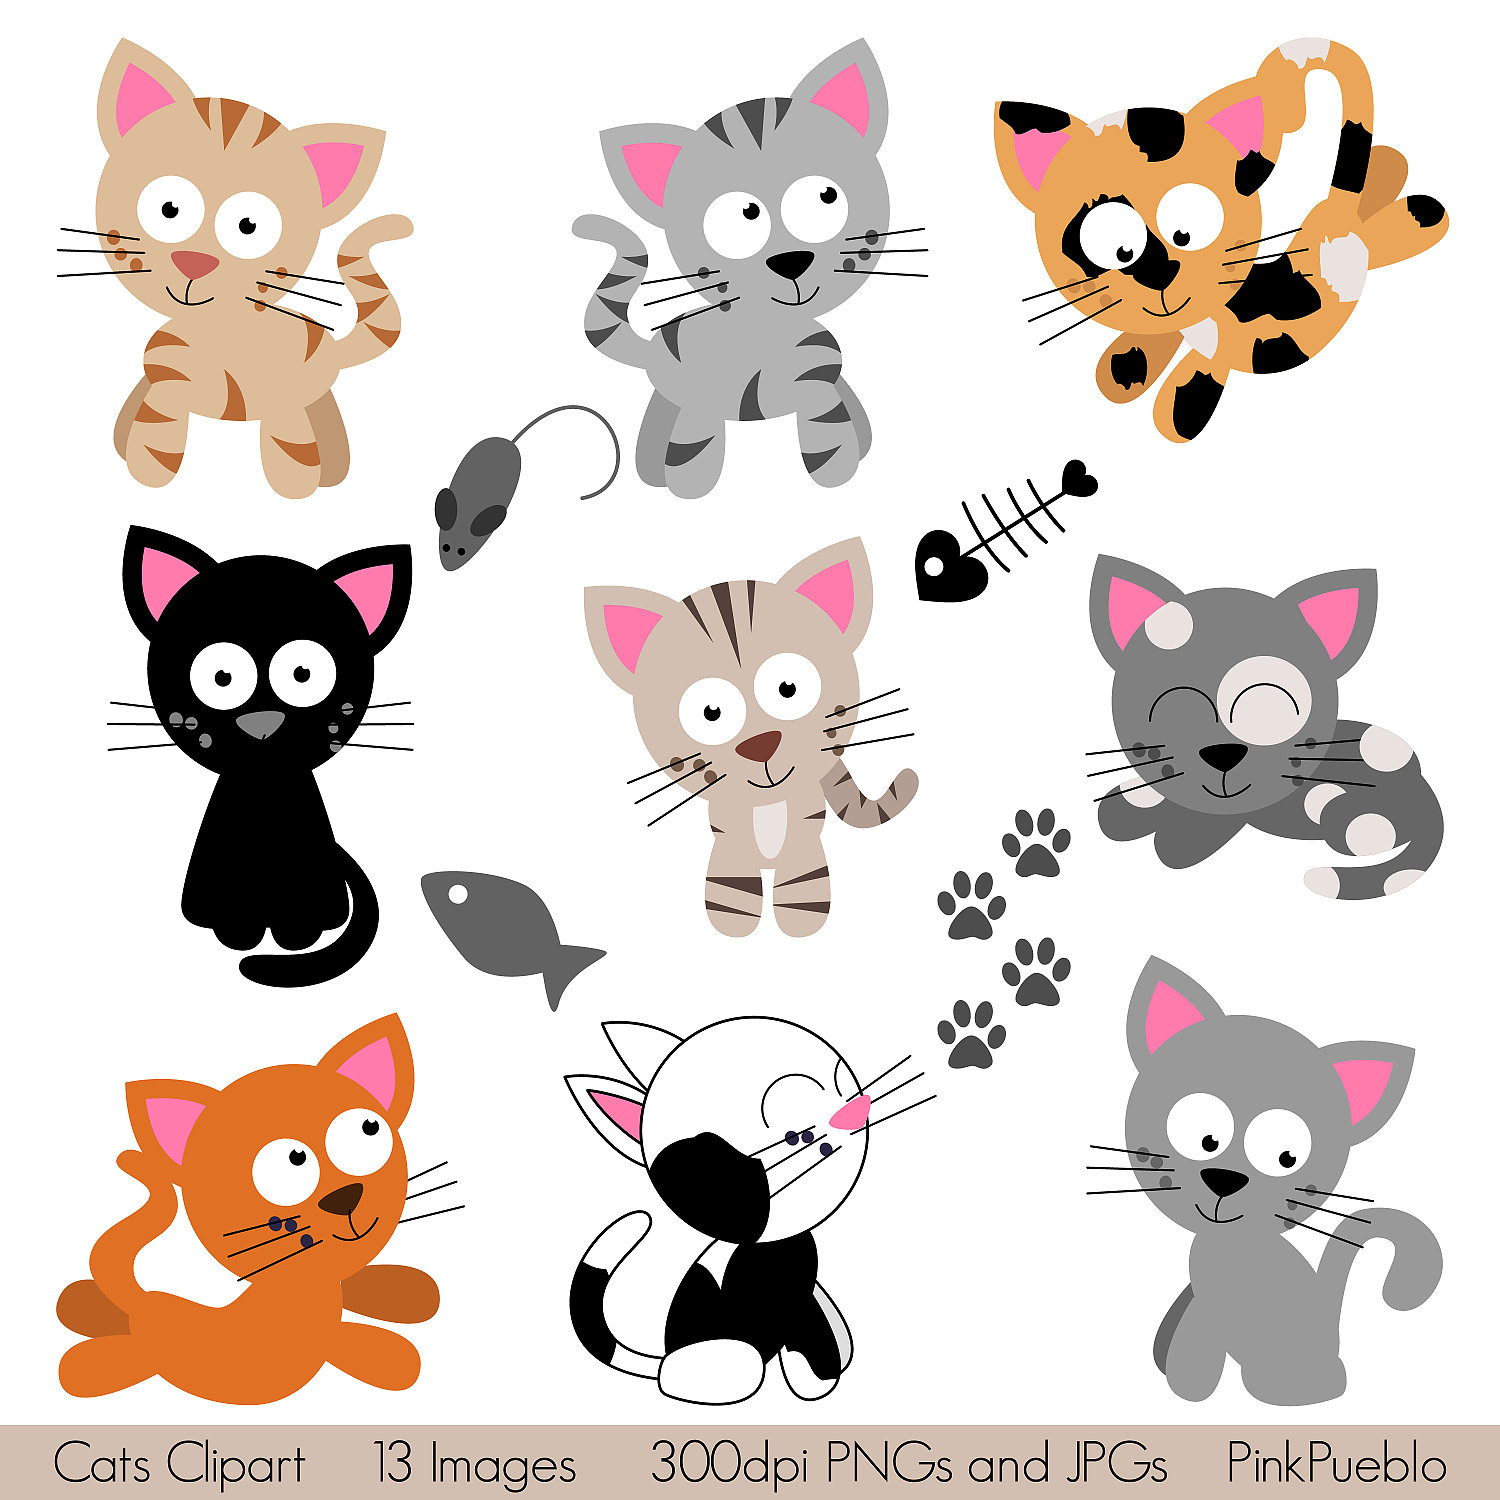 Kittens clipart 6 cat. Free cliparts download clip